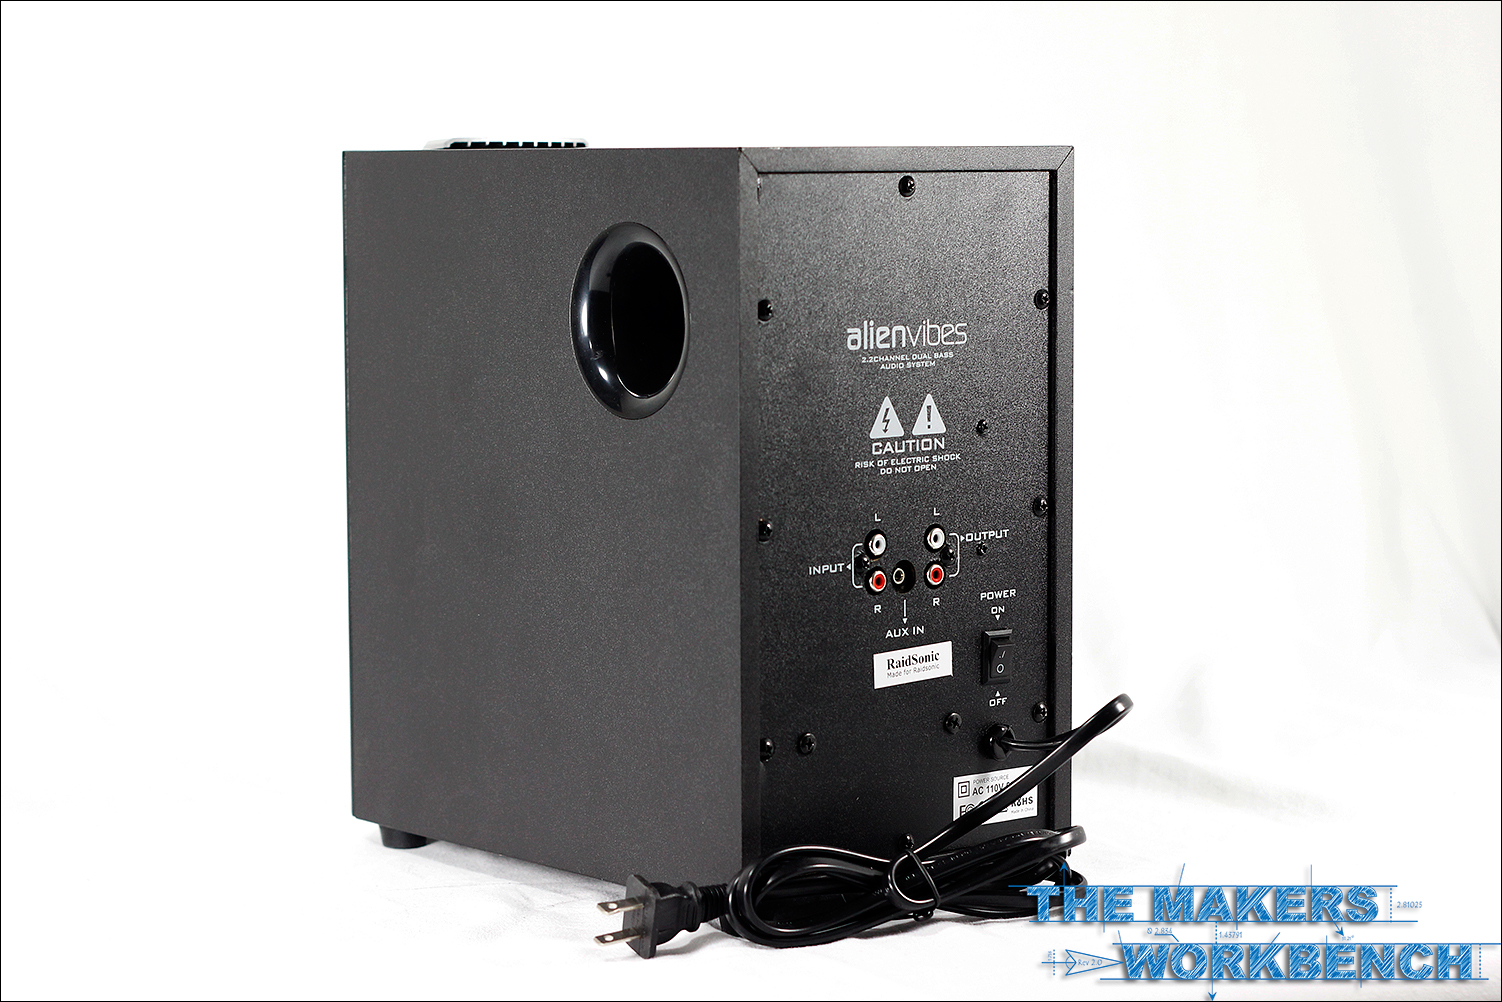 Makers Workbench Reviews AlienVibes W402 2.1 Channel PC speaker system.